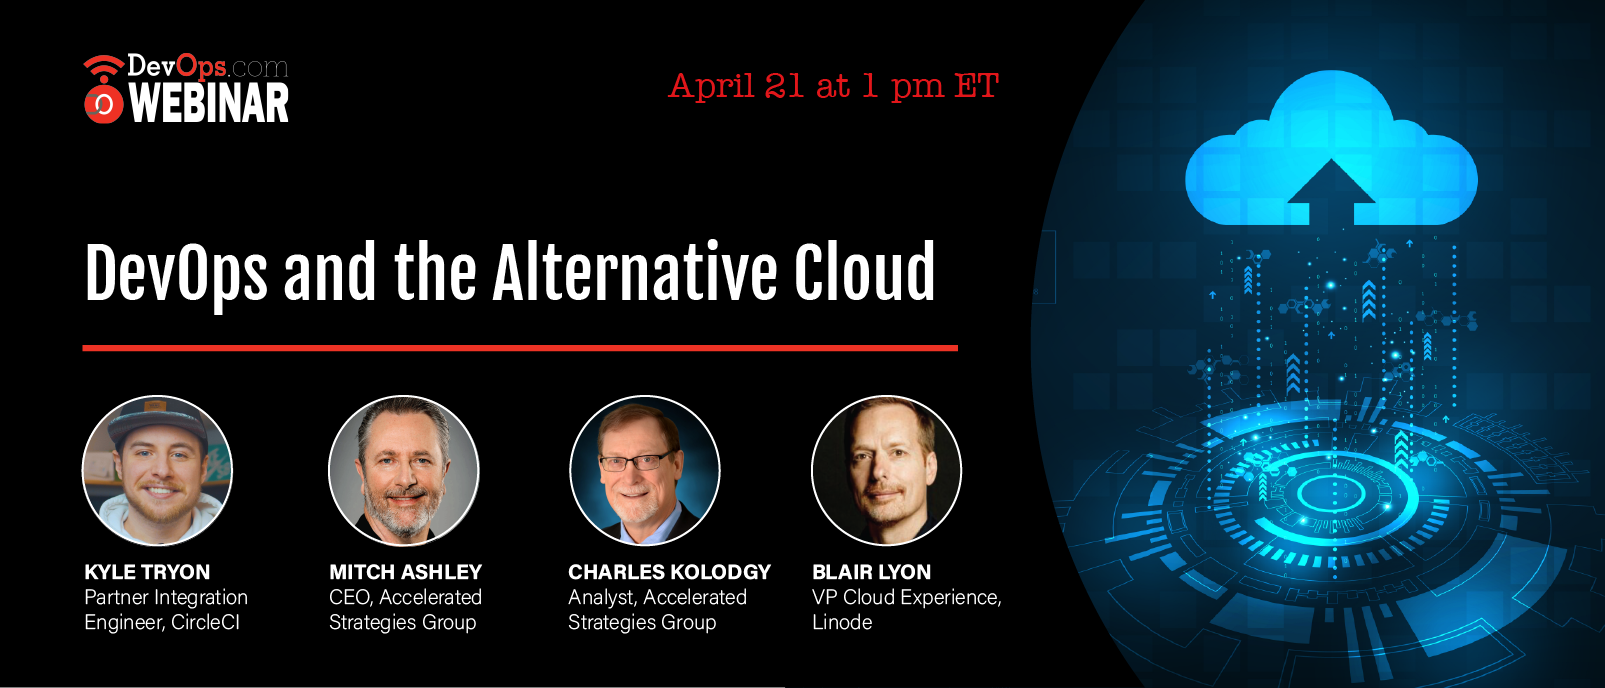 DevOps and the Alternative Cloud